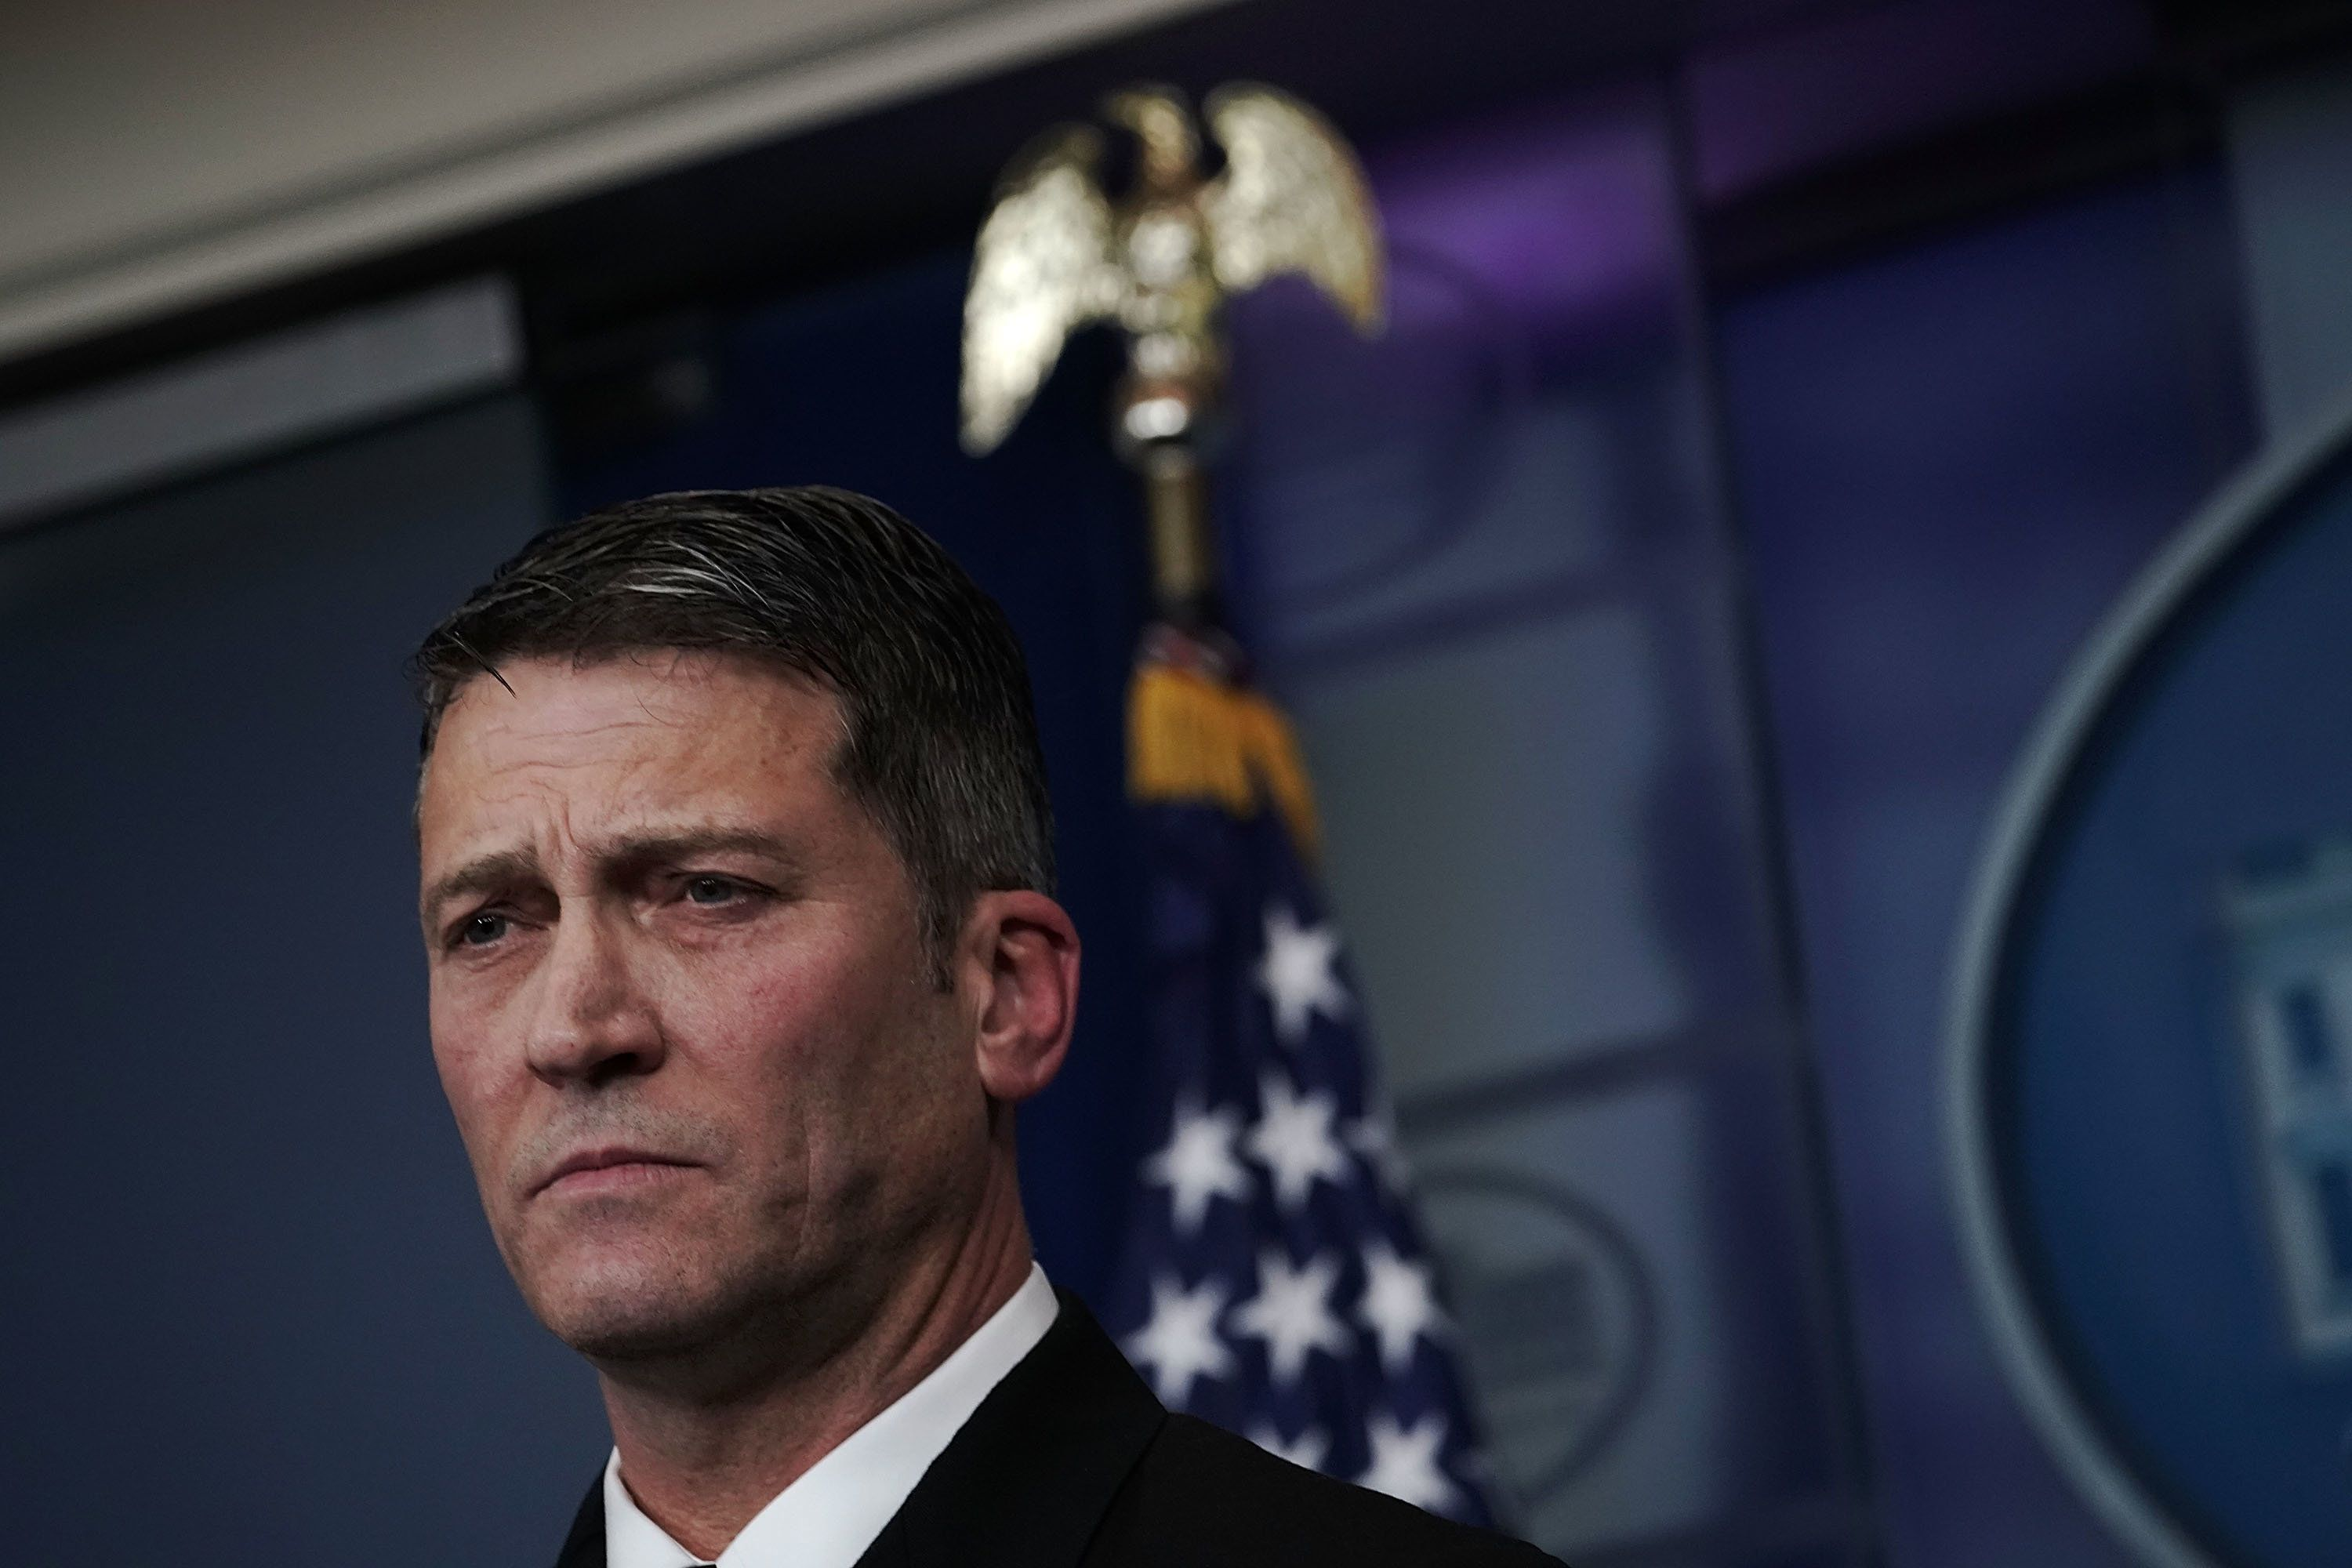 Dr. Ronny Jackson will not return to his old role as personal physician to the president, several media outlets reported Sund